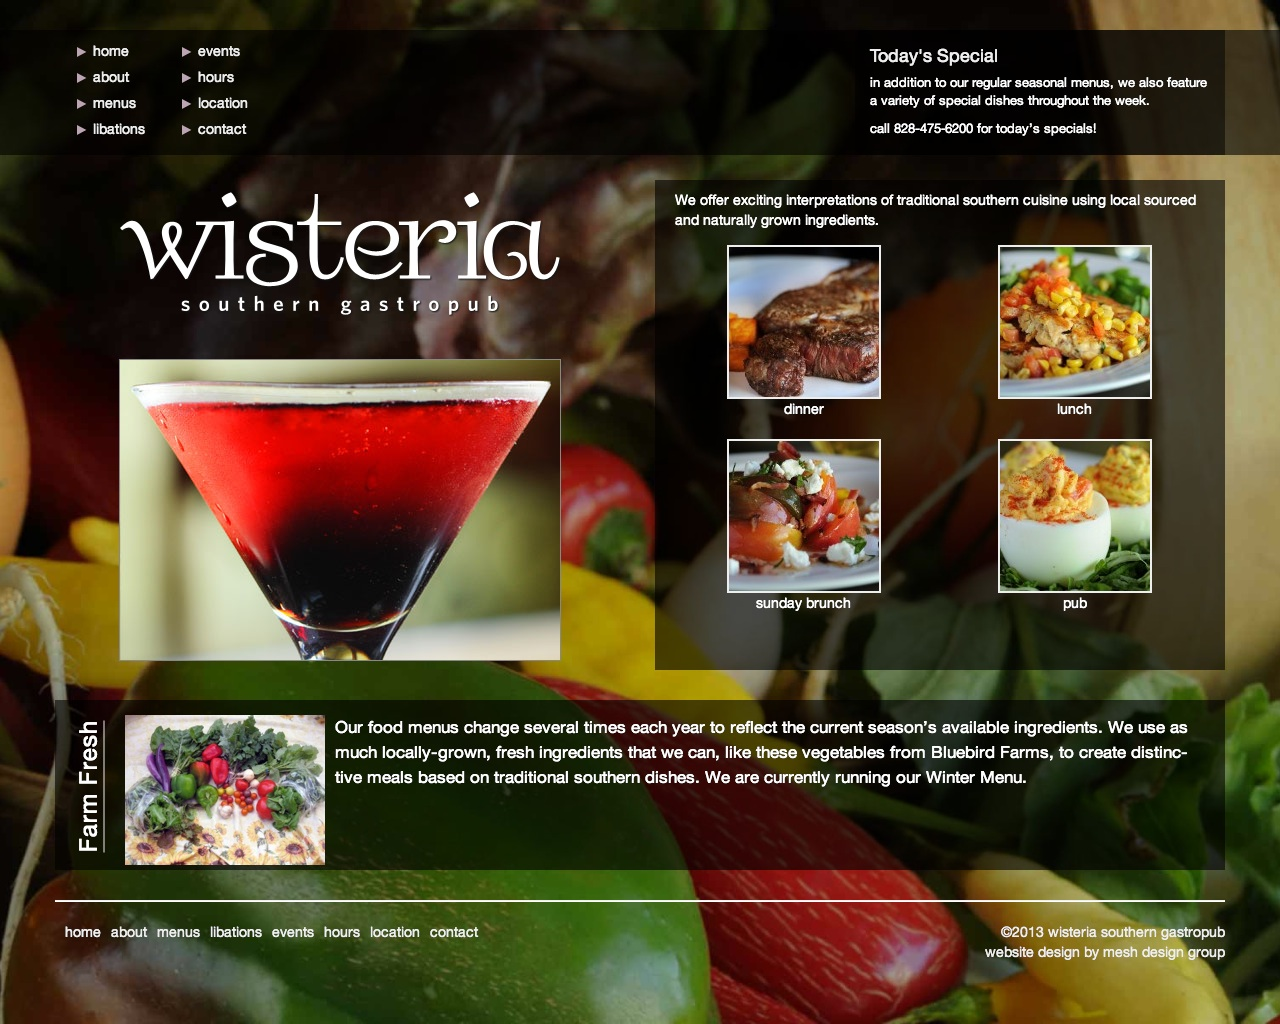 Website design for Wisteria Southern Gastropub